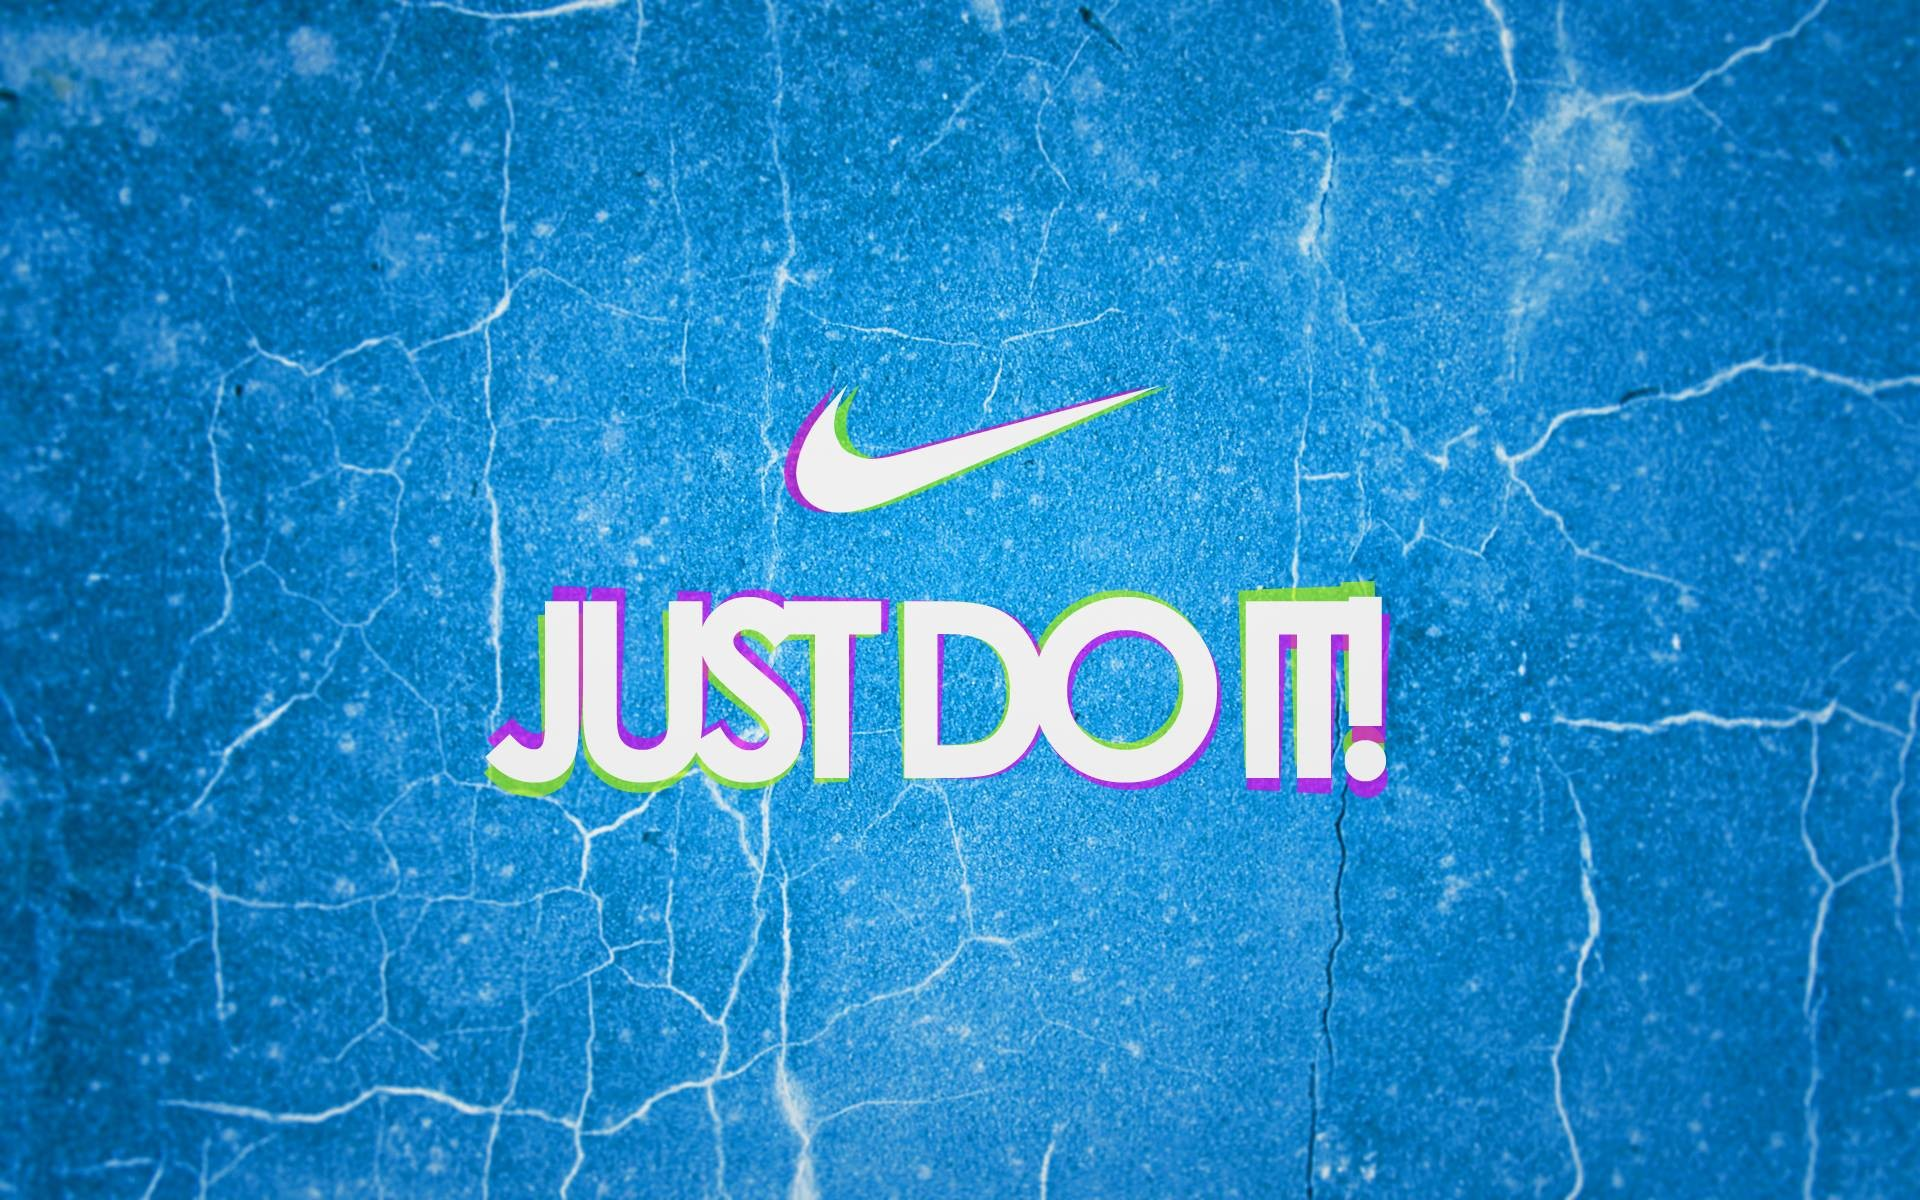 Nike wallpaper just do it 1920x1200 nike wallpapers full hd wallpaper search download nike wallpaper just do it voltagebd Choice Image